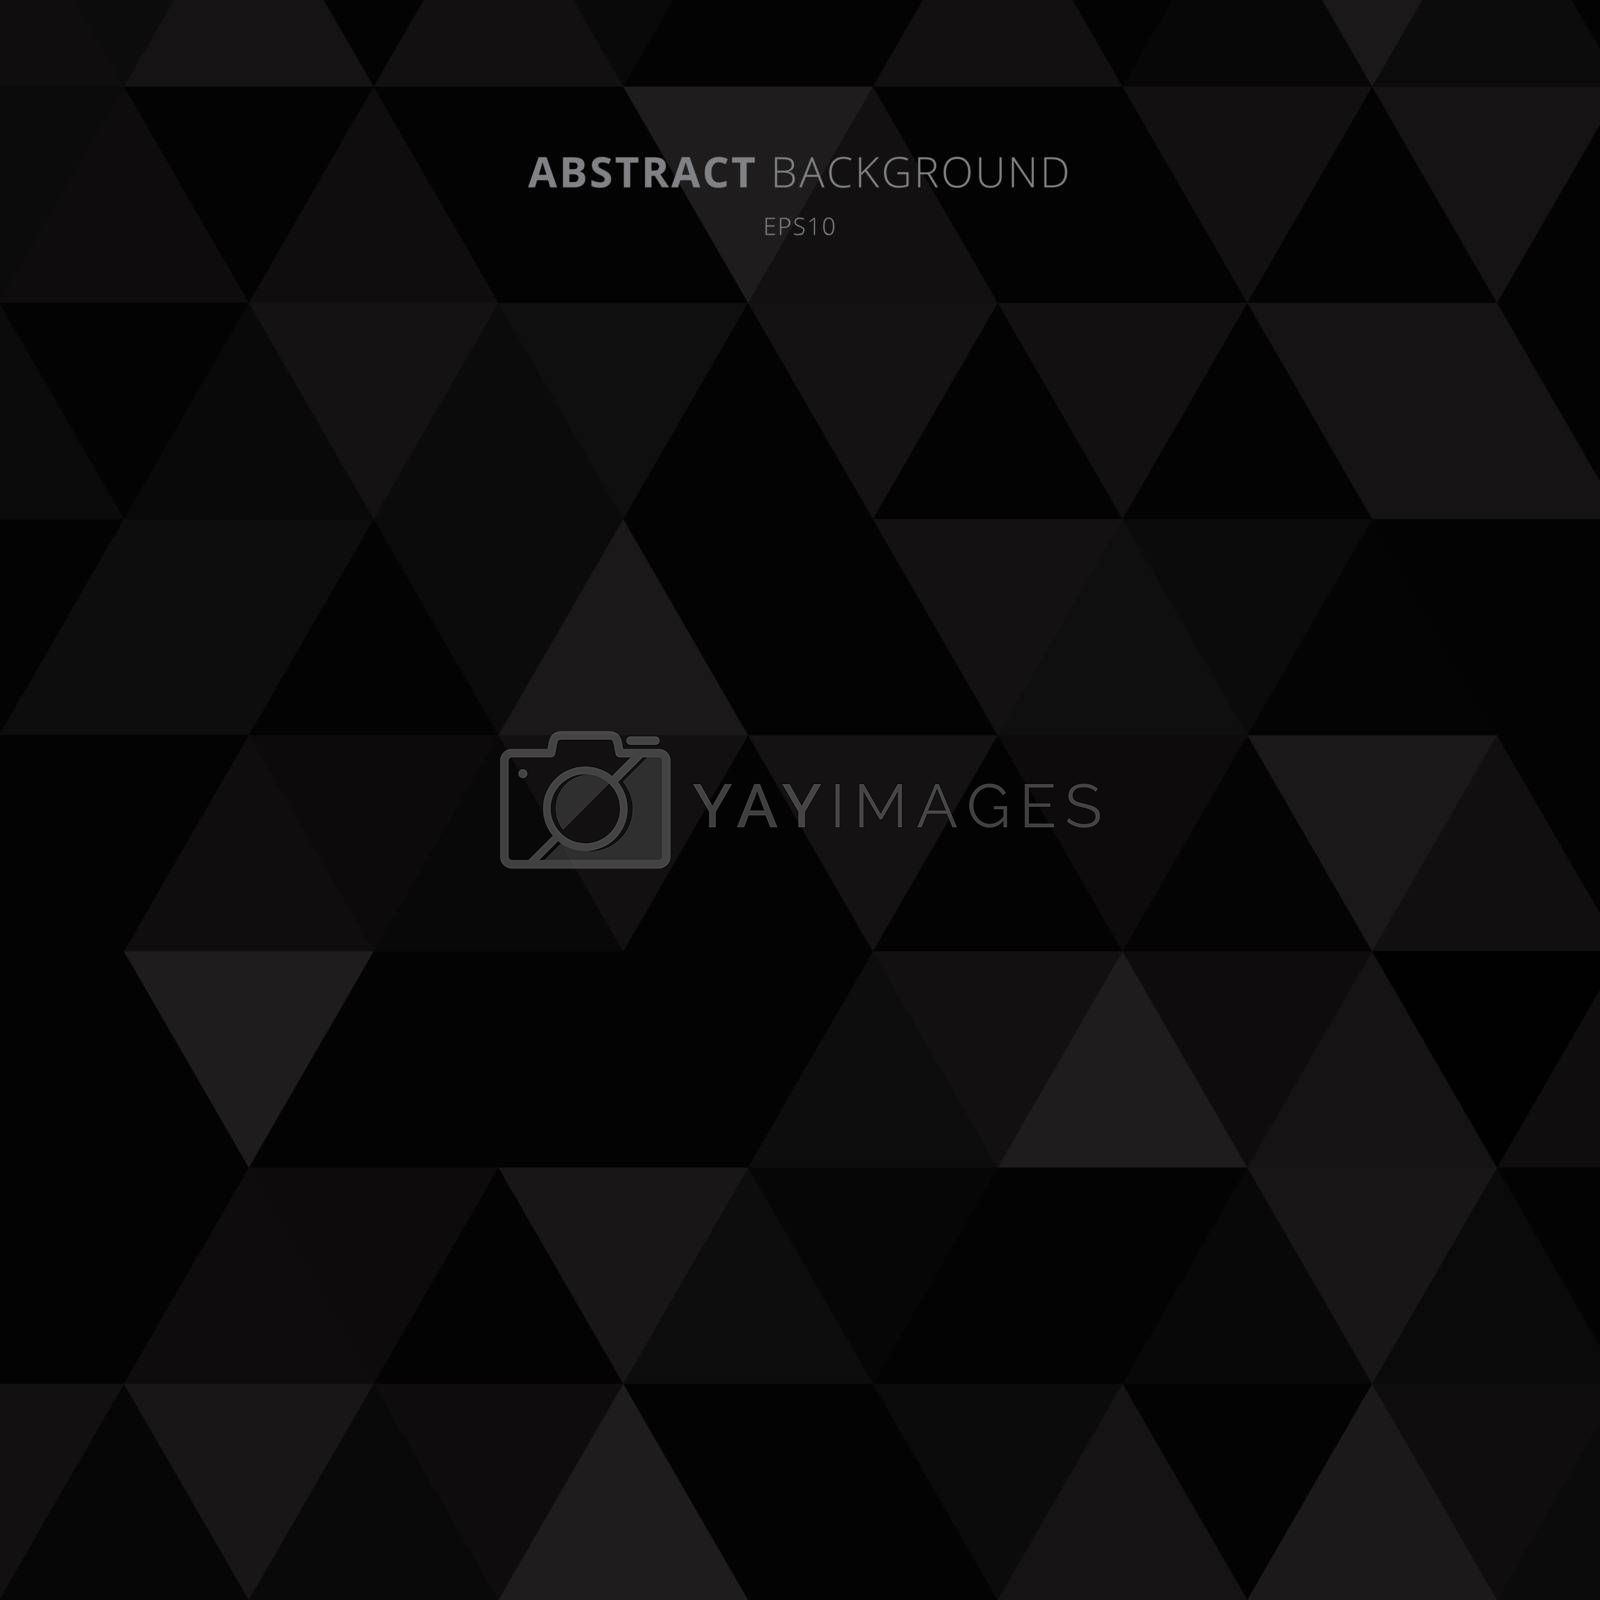 Abstract black triangles pattern on dark background minimal styl by phochi